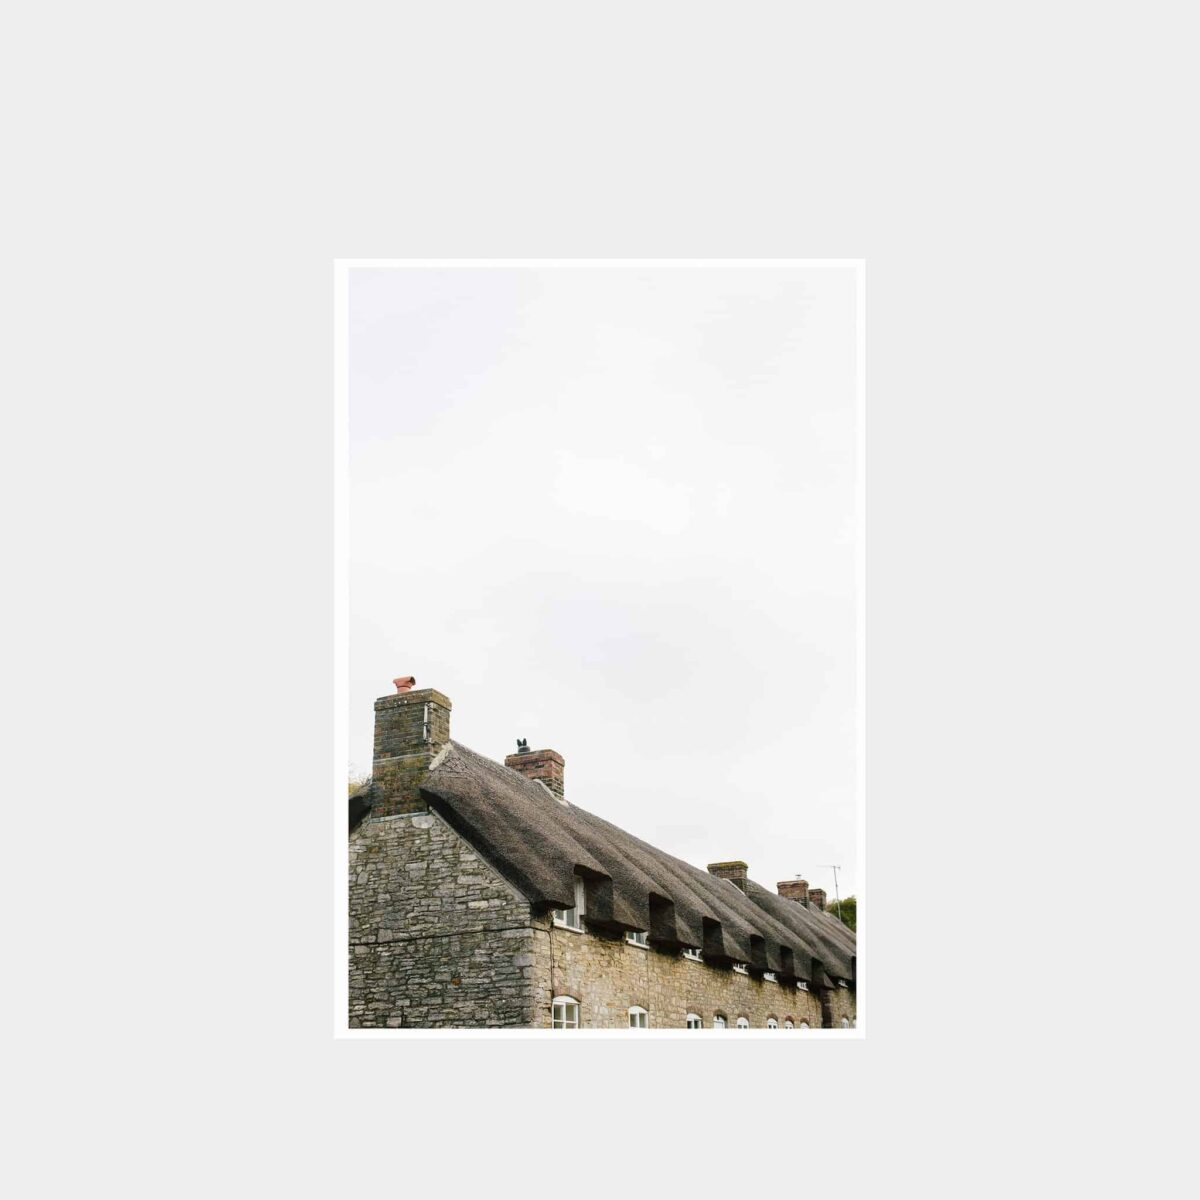 thatched-print-only-rich-stapleton-another-country-001_56937535-e313-434d-b2d3-1053b1f6570b.jpeg